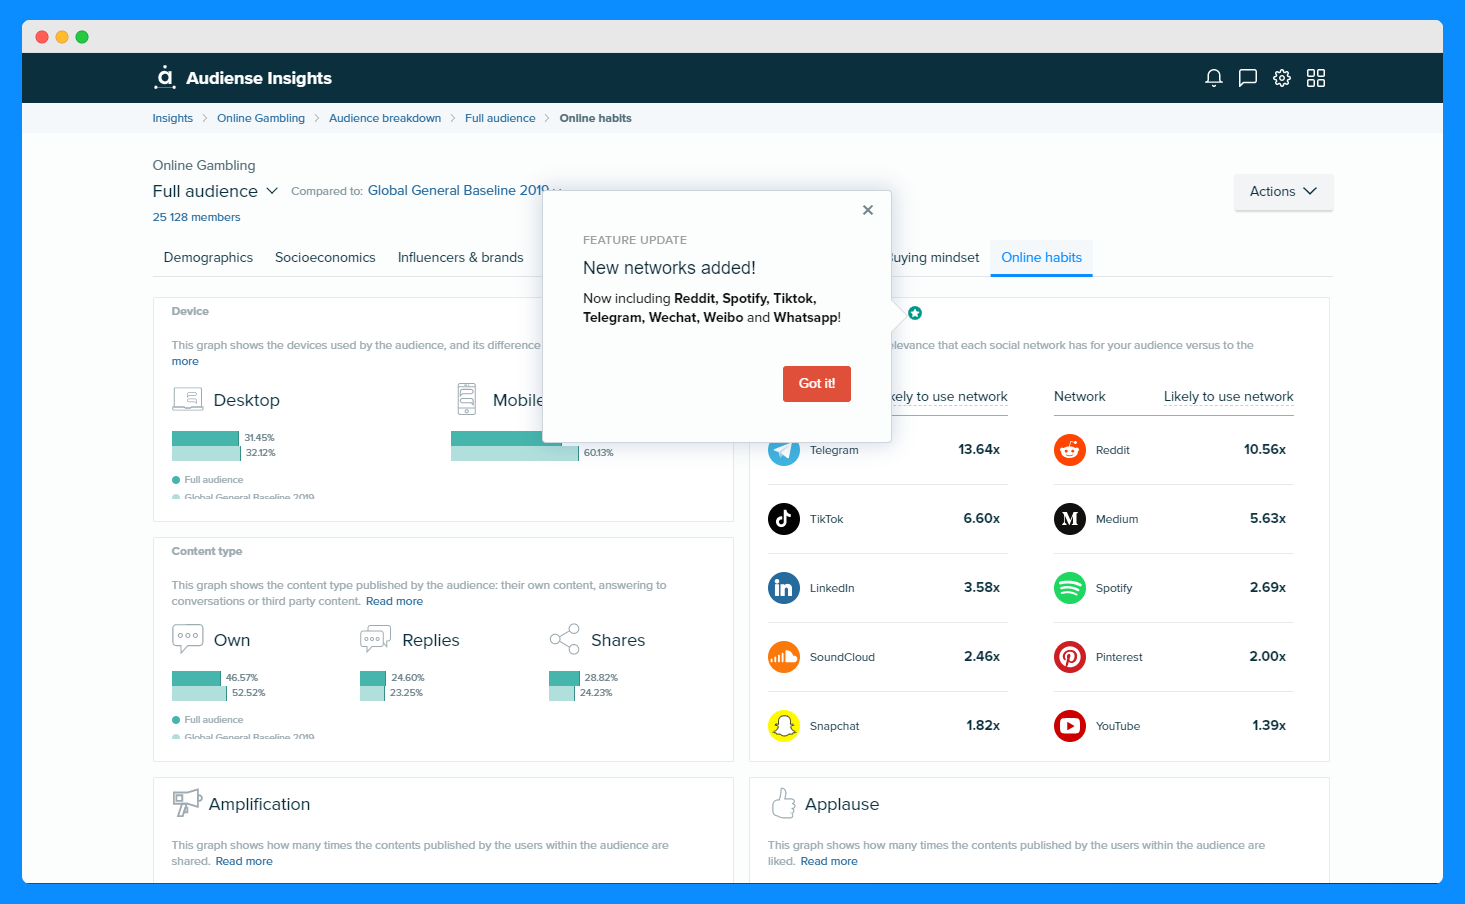 Audiense Insights - Social Media Relevance improved